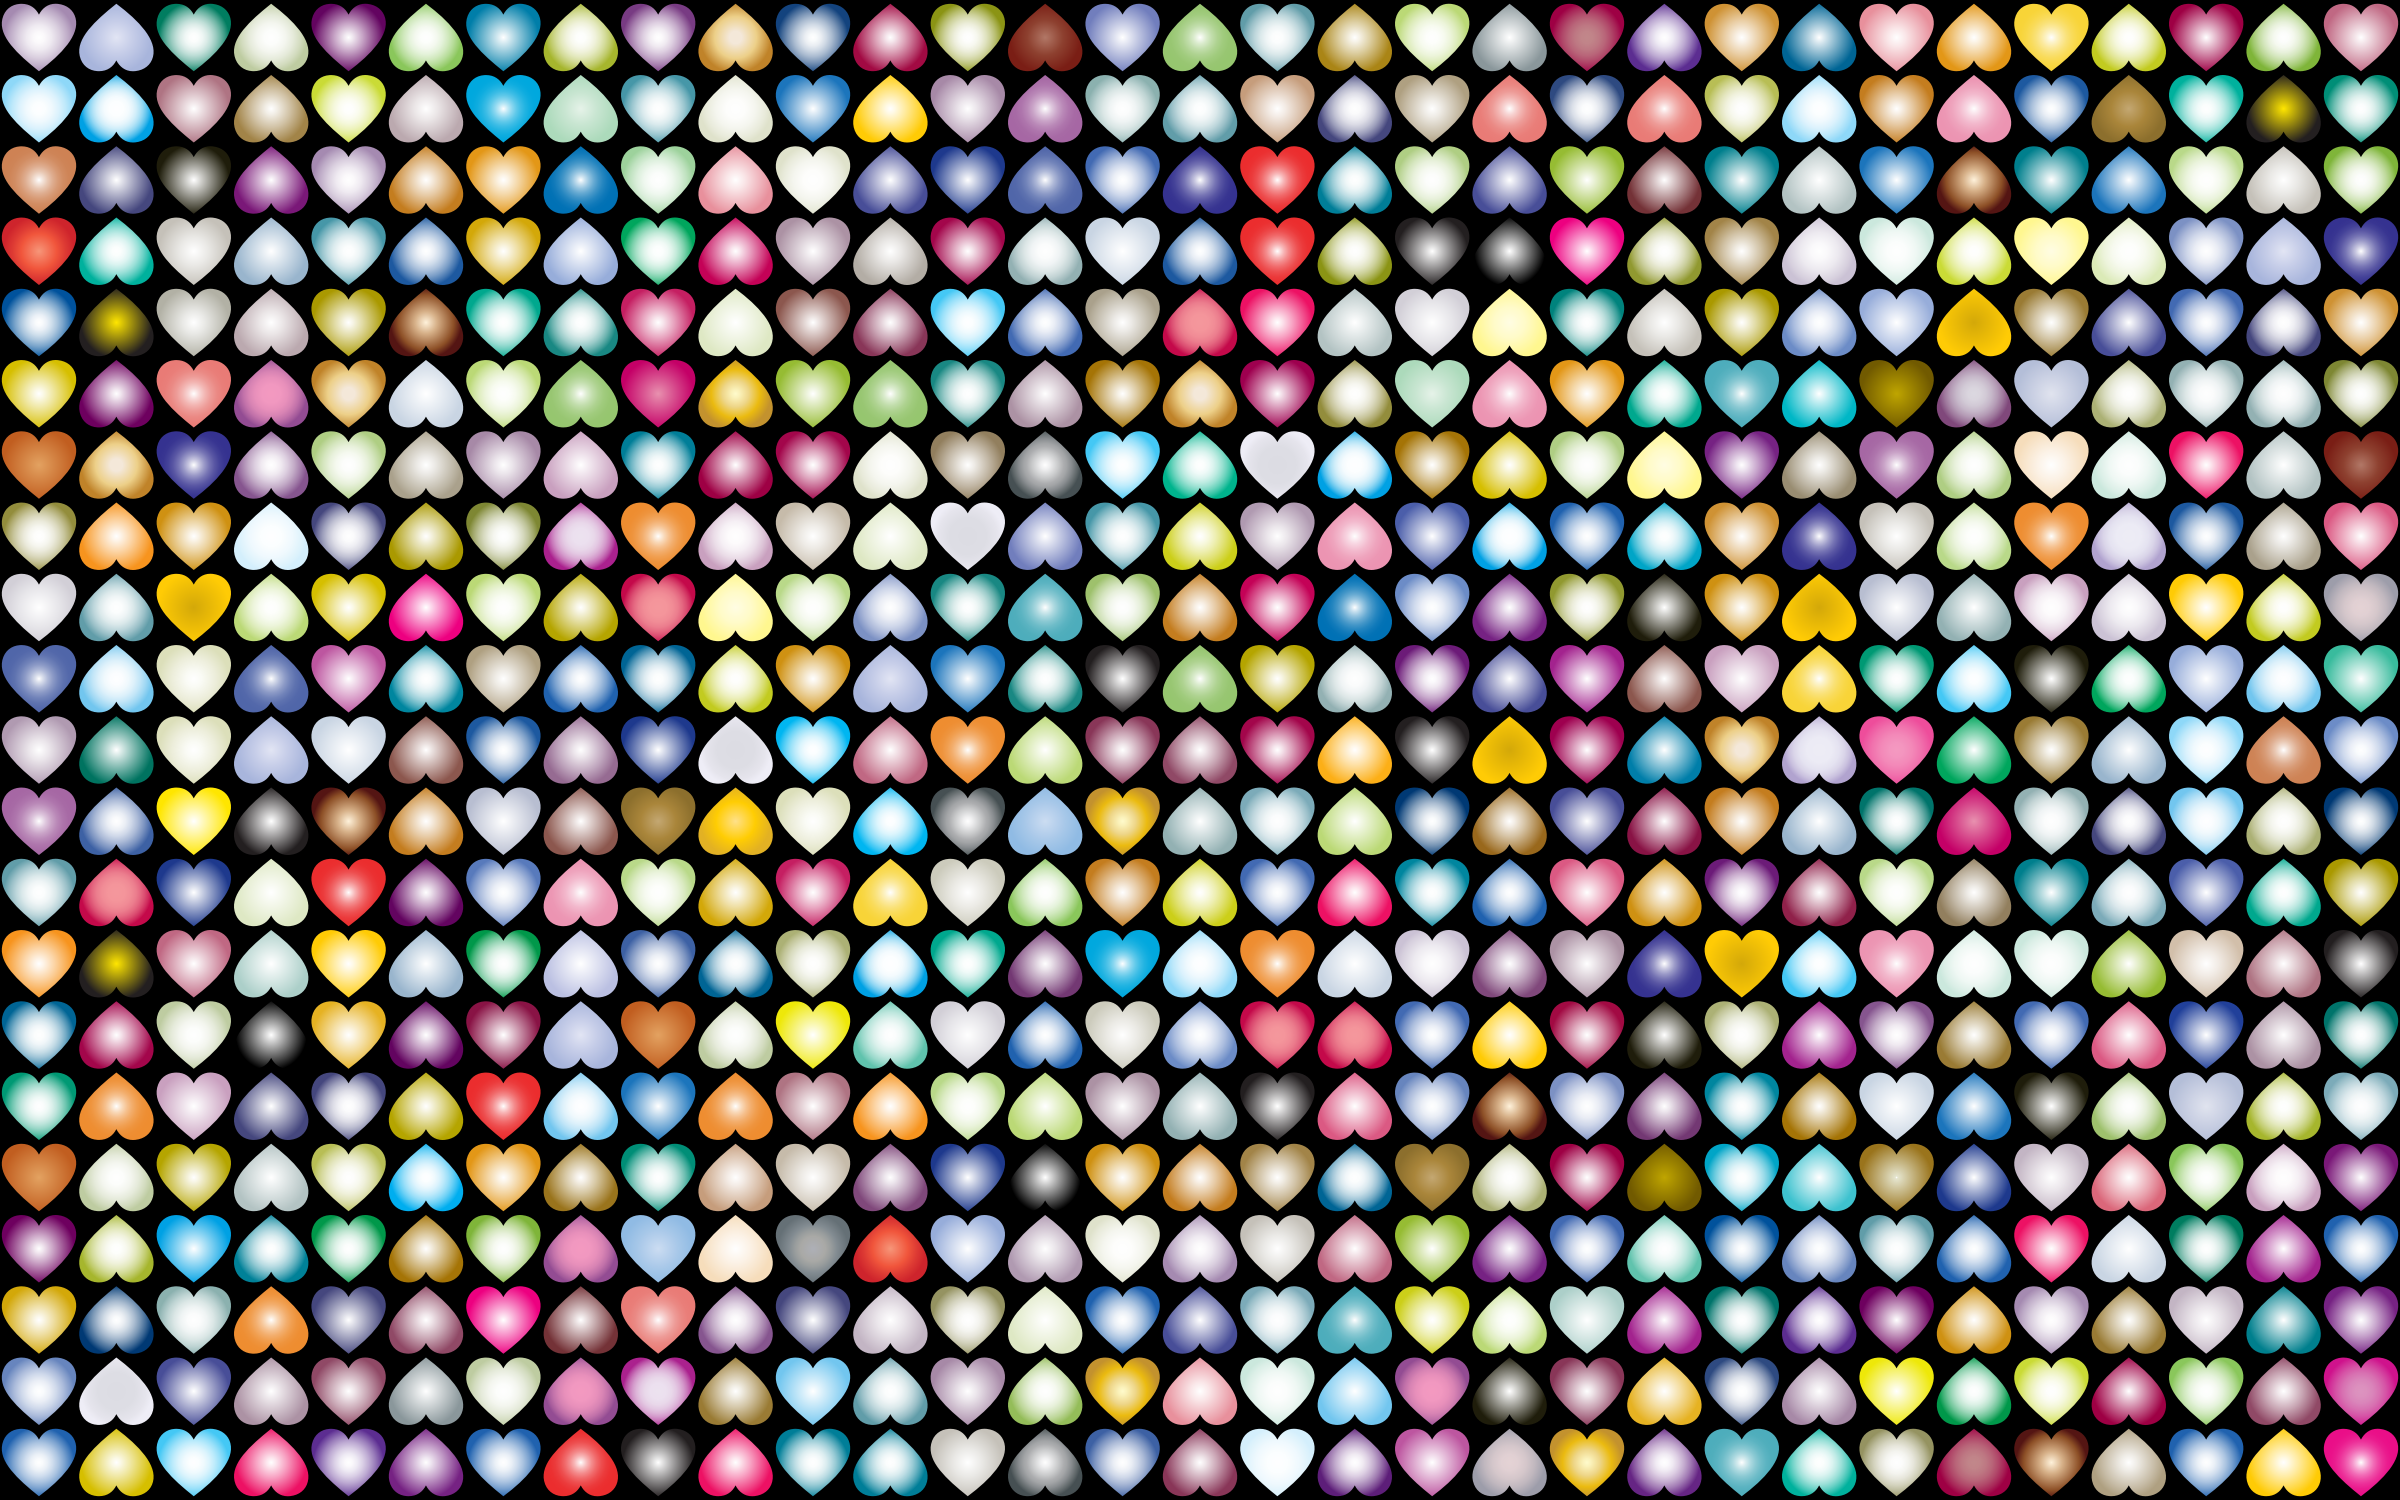 Prismatic Alternating Hearts Pattern Background 4 by GDJ